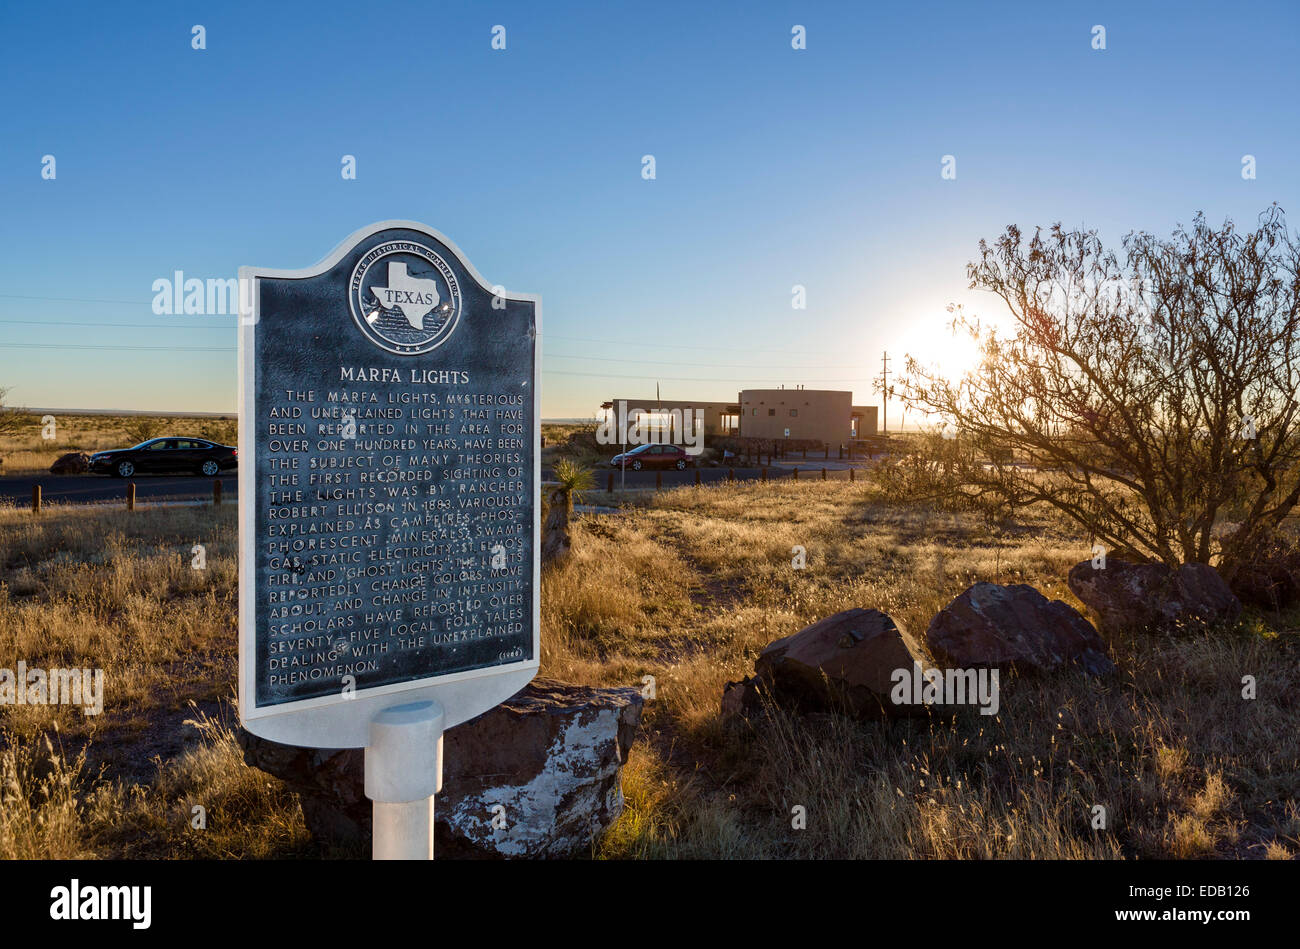 The Marfa Lights viewing location at sunset, US Route 67, Mitchell Flat, Marfa, Texas, USA - Stock Image